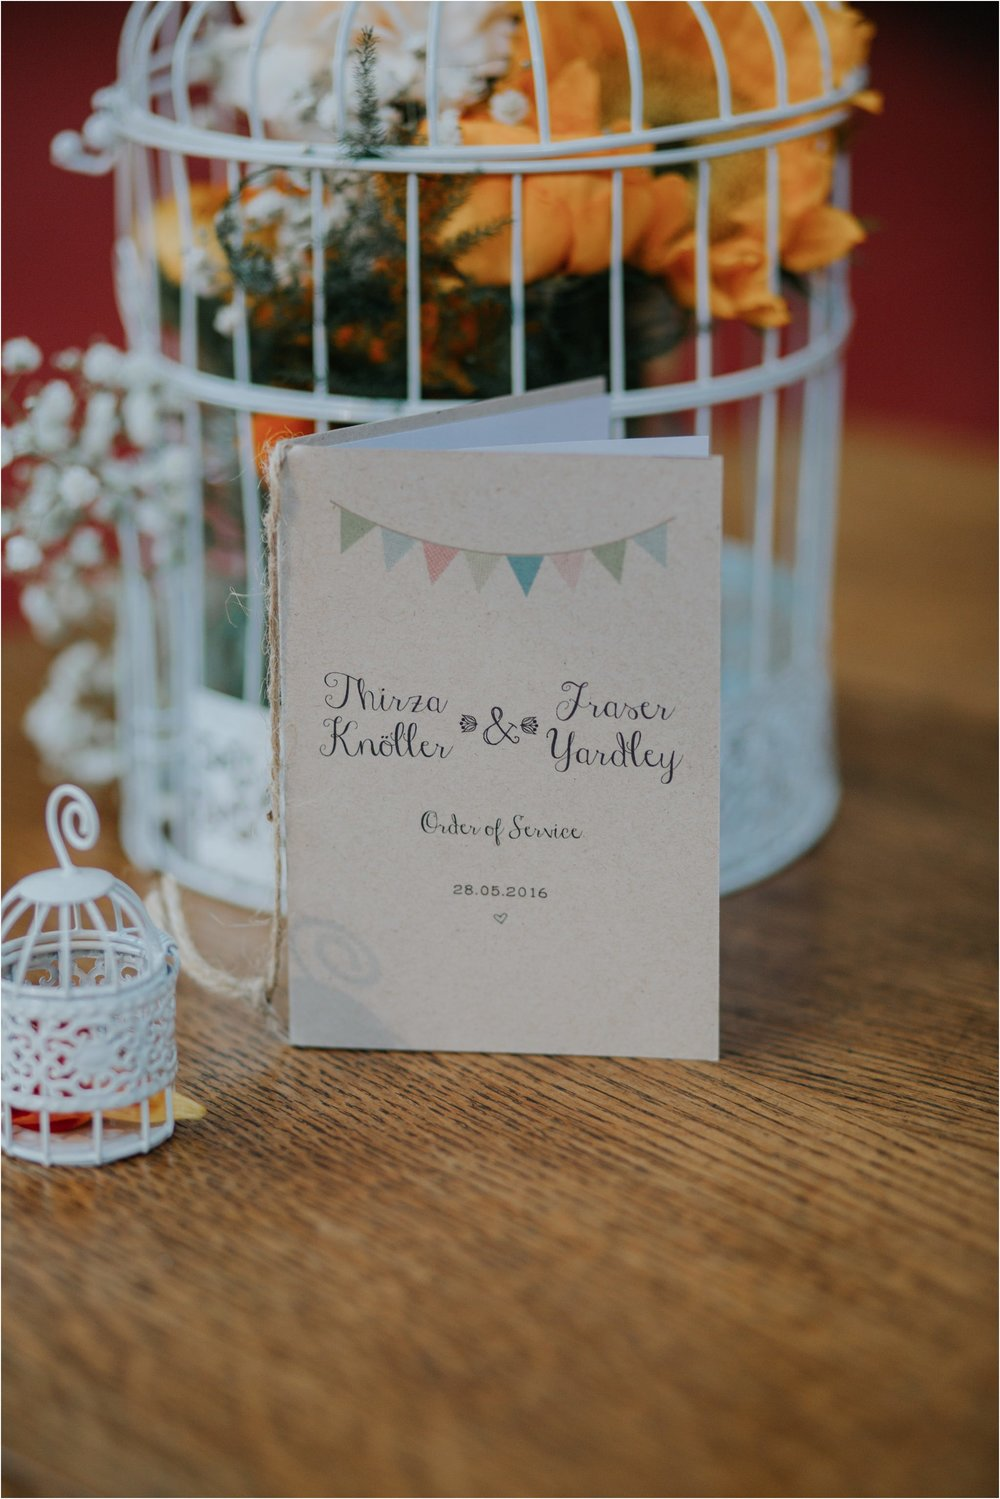 Photography 78 - Glasgow Wedding Photographer - Fraser Thirza - Killearn Village Hall - Three Sisters Bake Wedding_0090.jpg